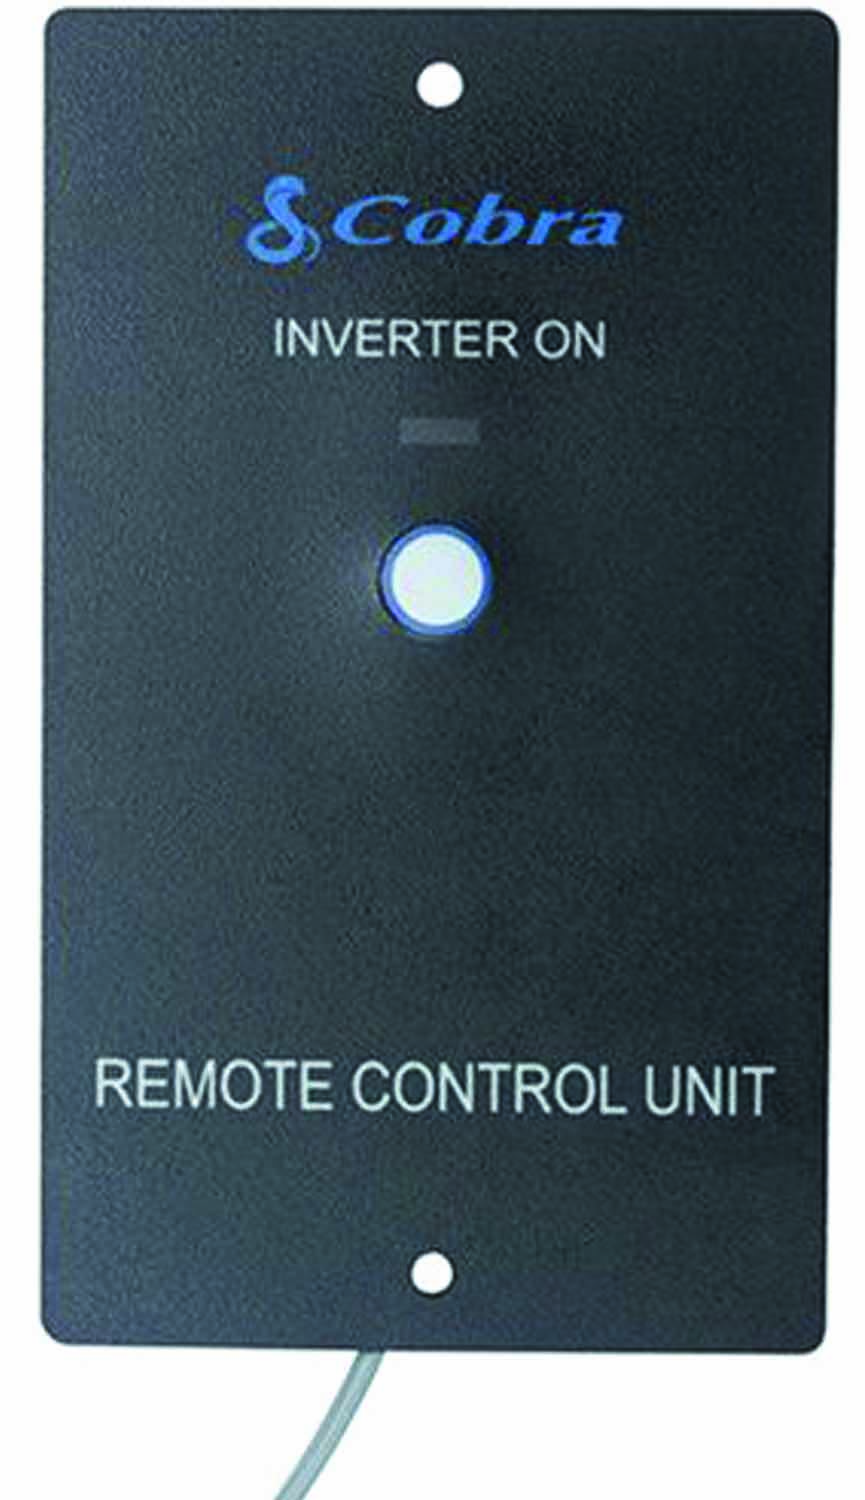 ON/OFF SWITCH FOR THE INVERTERS